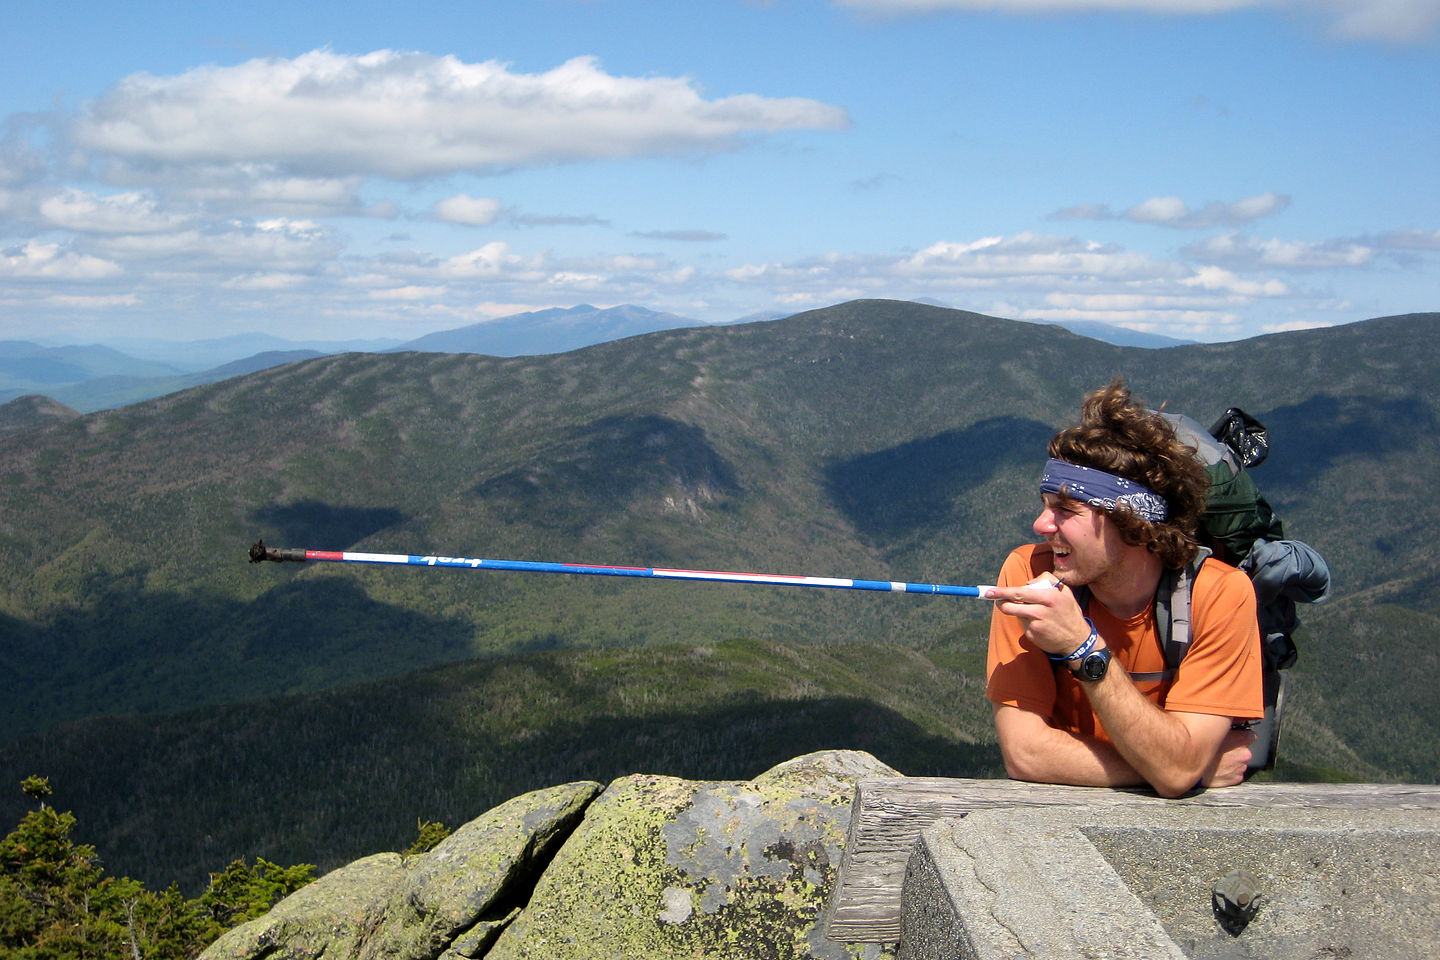 Garfield Ridge - Pointing to Camel's Hump, VT